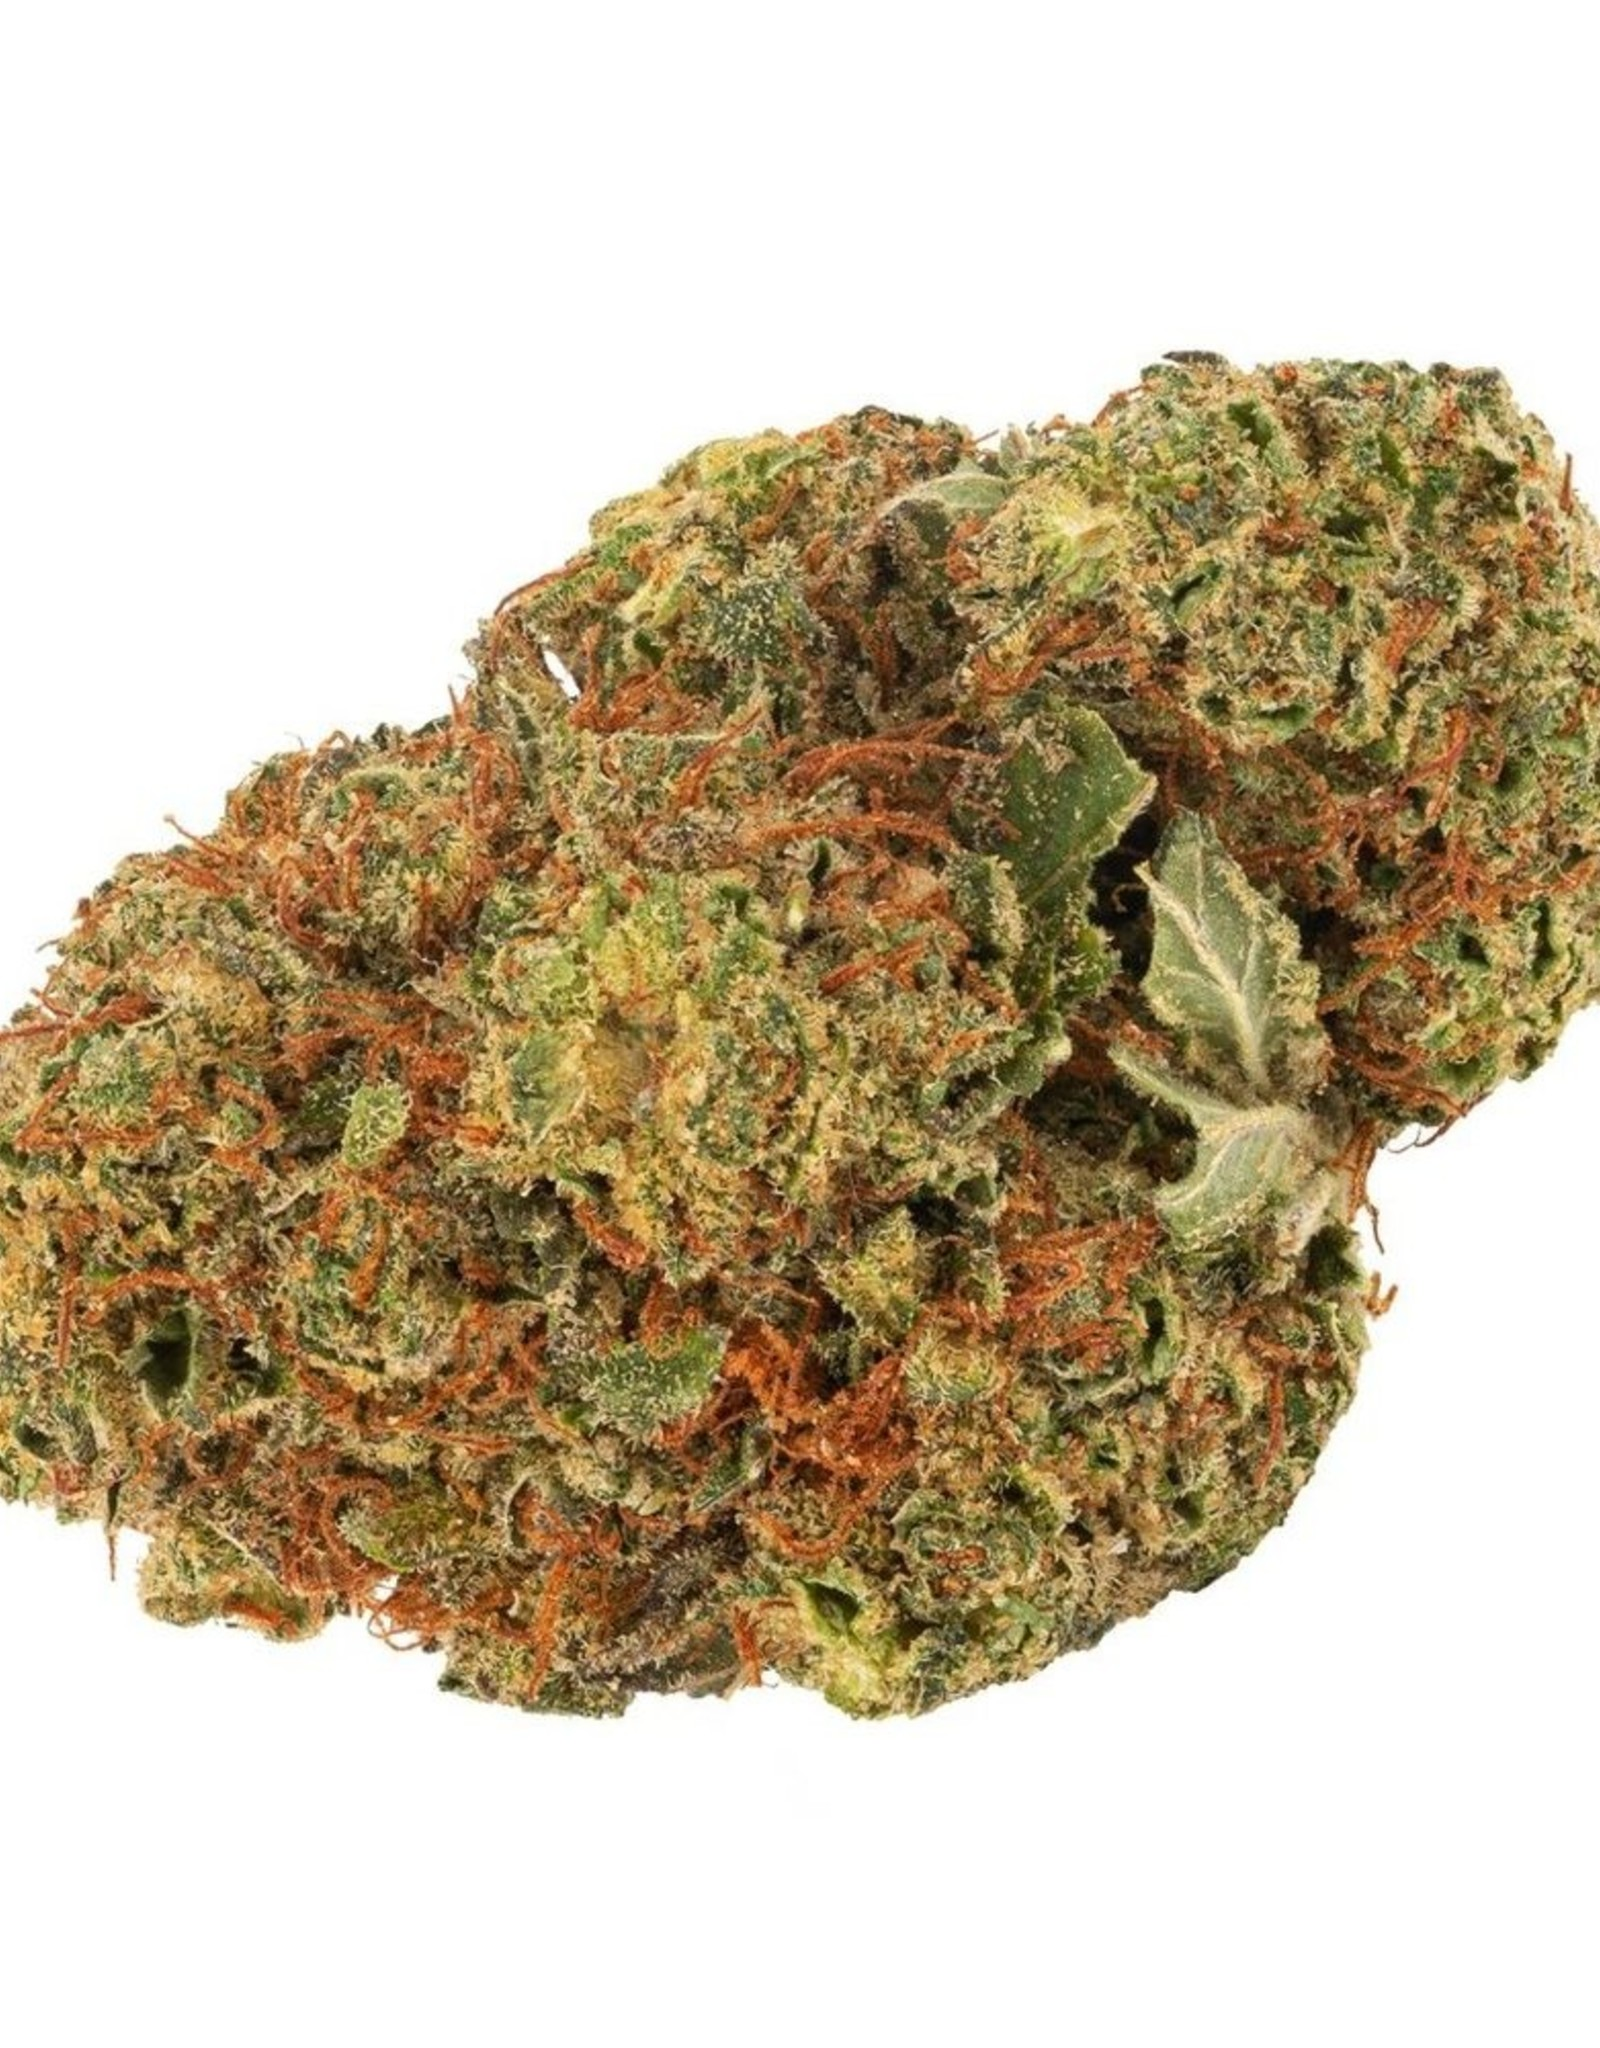 Daily Special Daily Special - Indica  3.5G